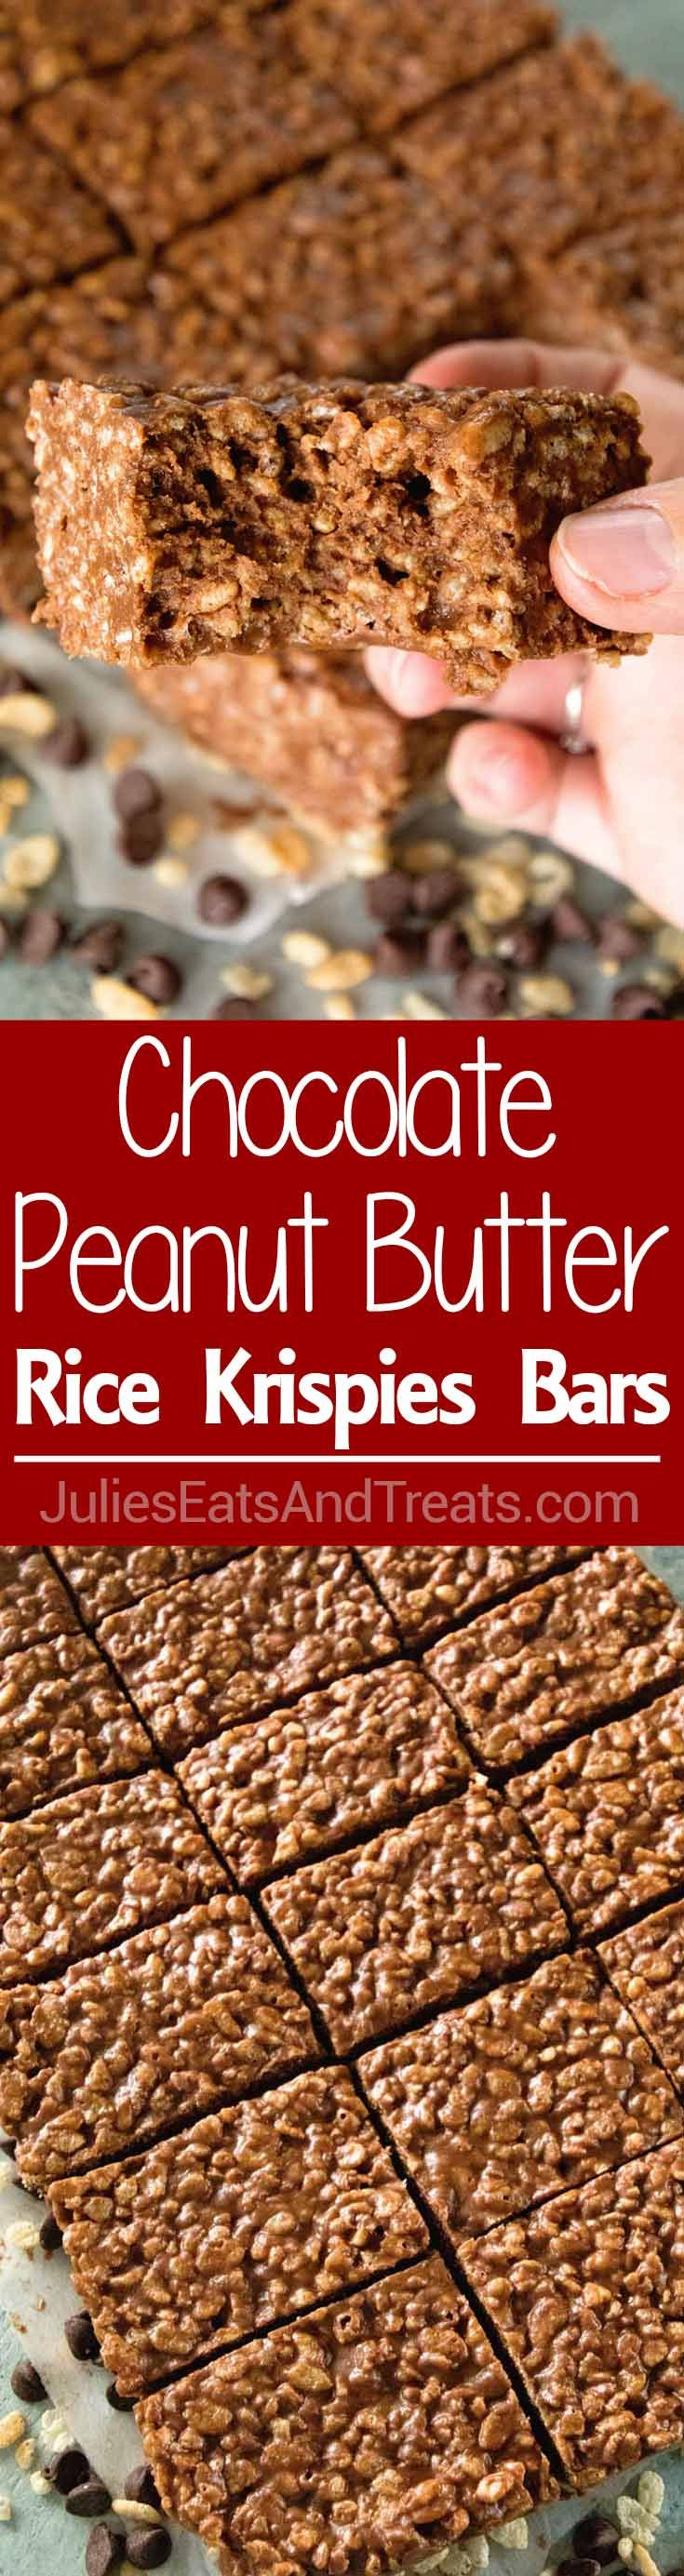 Chocolate Peanut Butter Rice Krispies Bars ~ Delicious Chocolate Peanut Butter Rice Krispie Treats are a Family Favorite! These No Bake Bars are Easy to Make and Always the First Ones Gone!